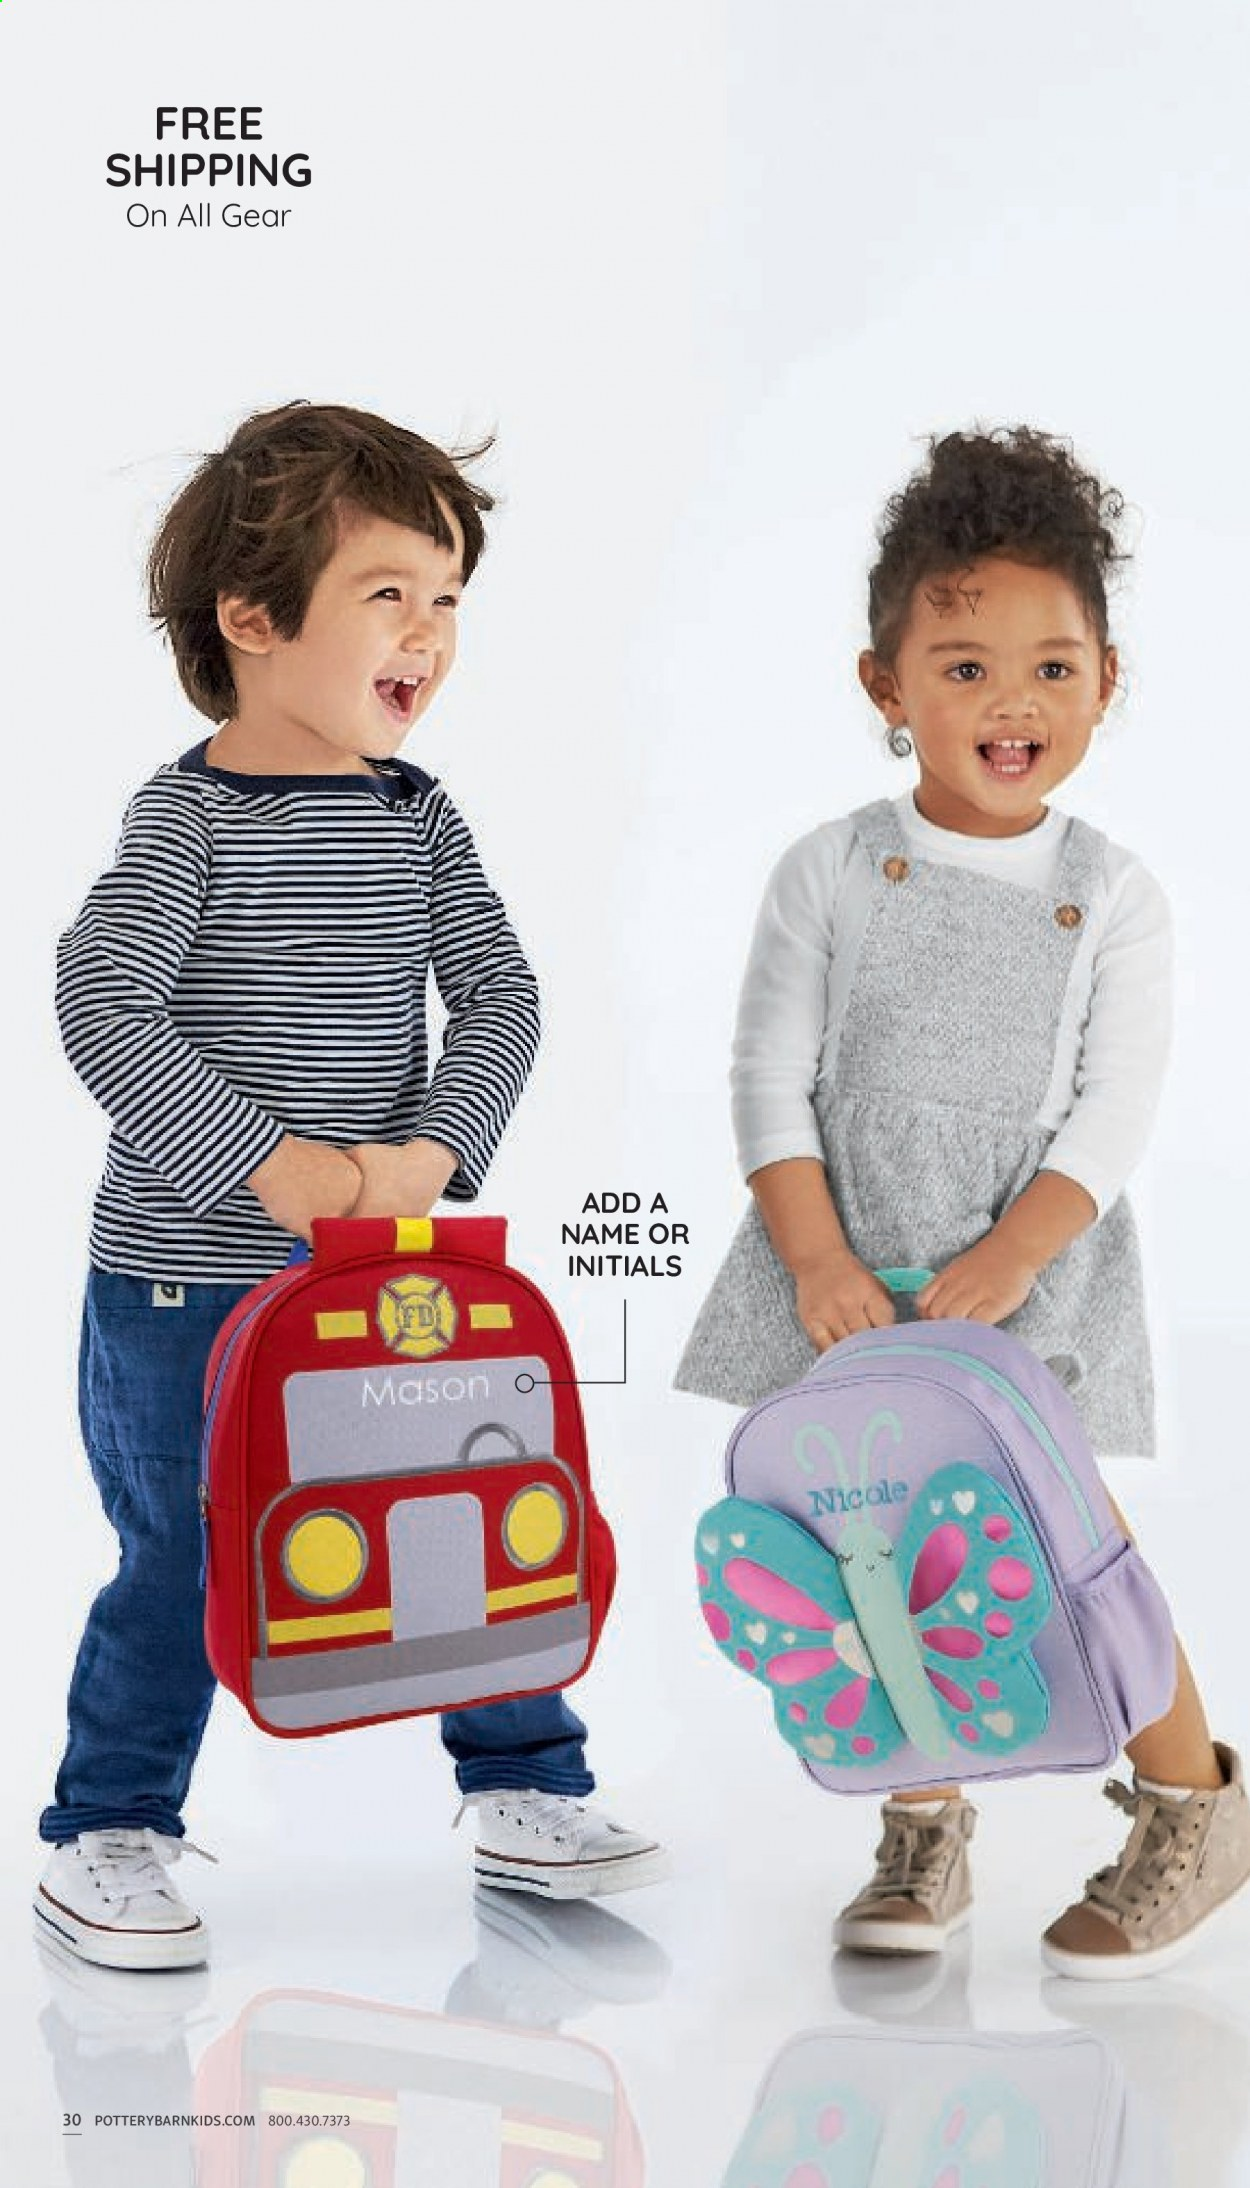 Pottery Barn Ad Kids - Back to School 2021 - Page 30